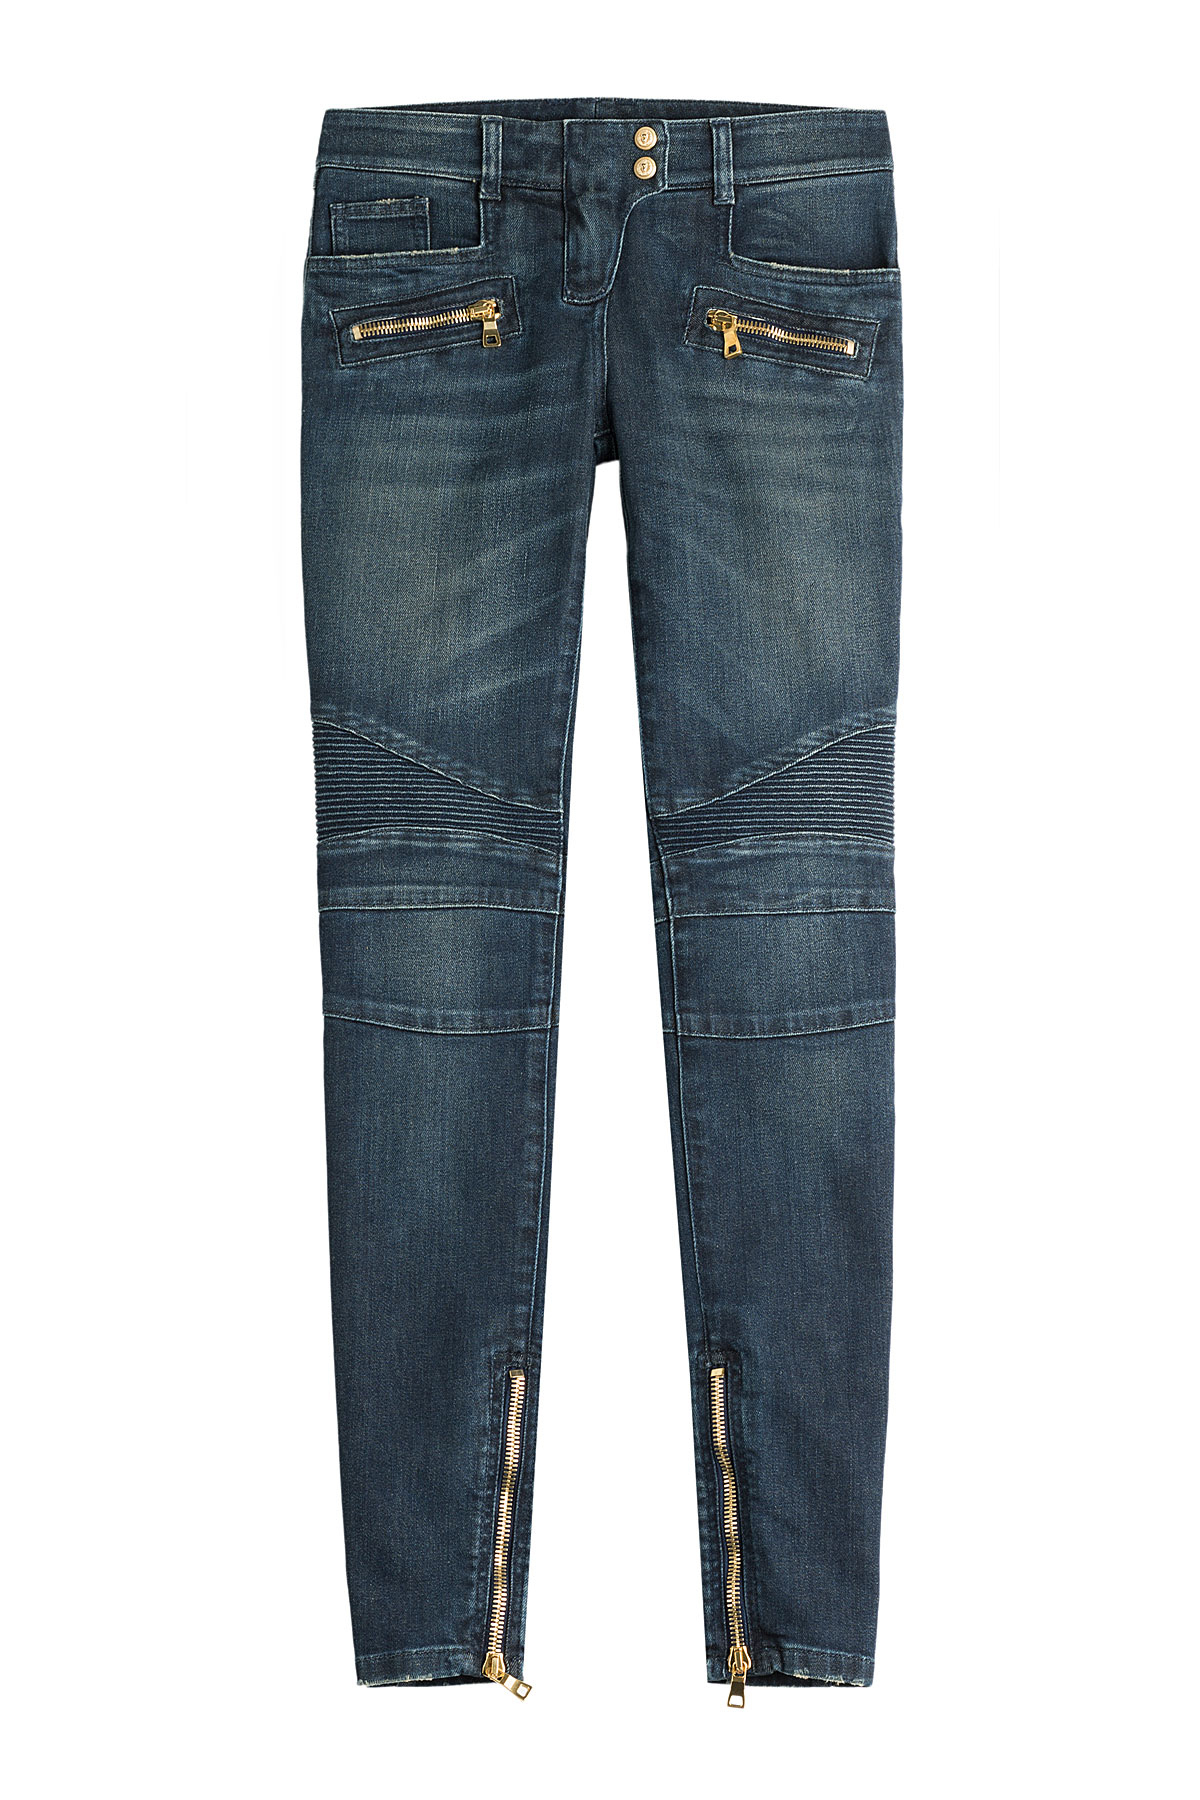 Motorcycle Jeans For Women